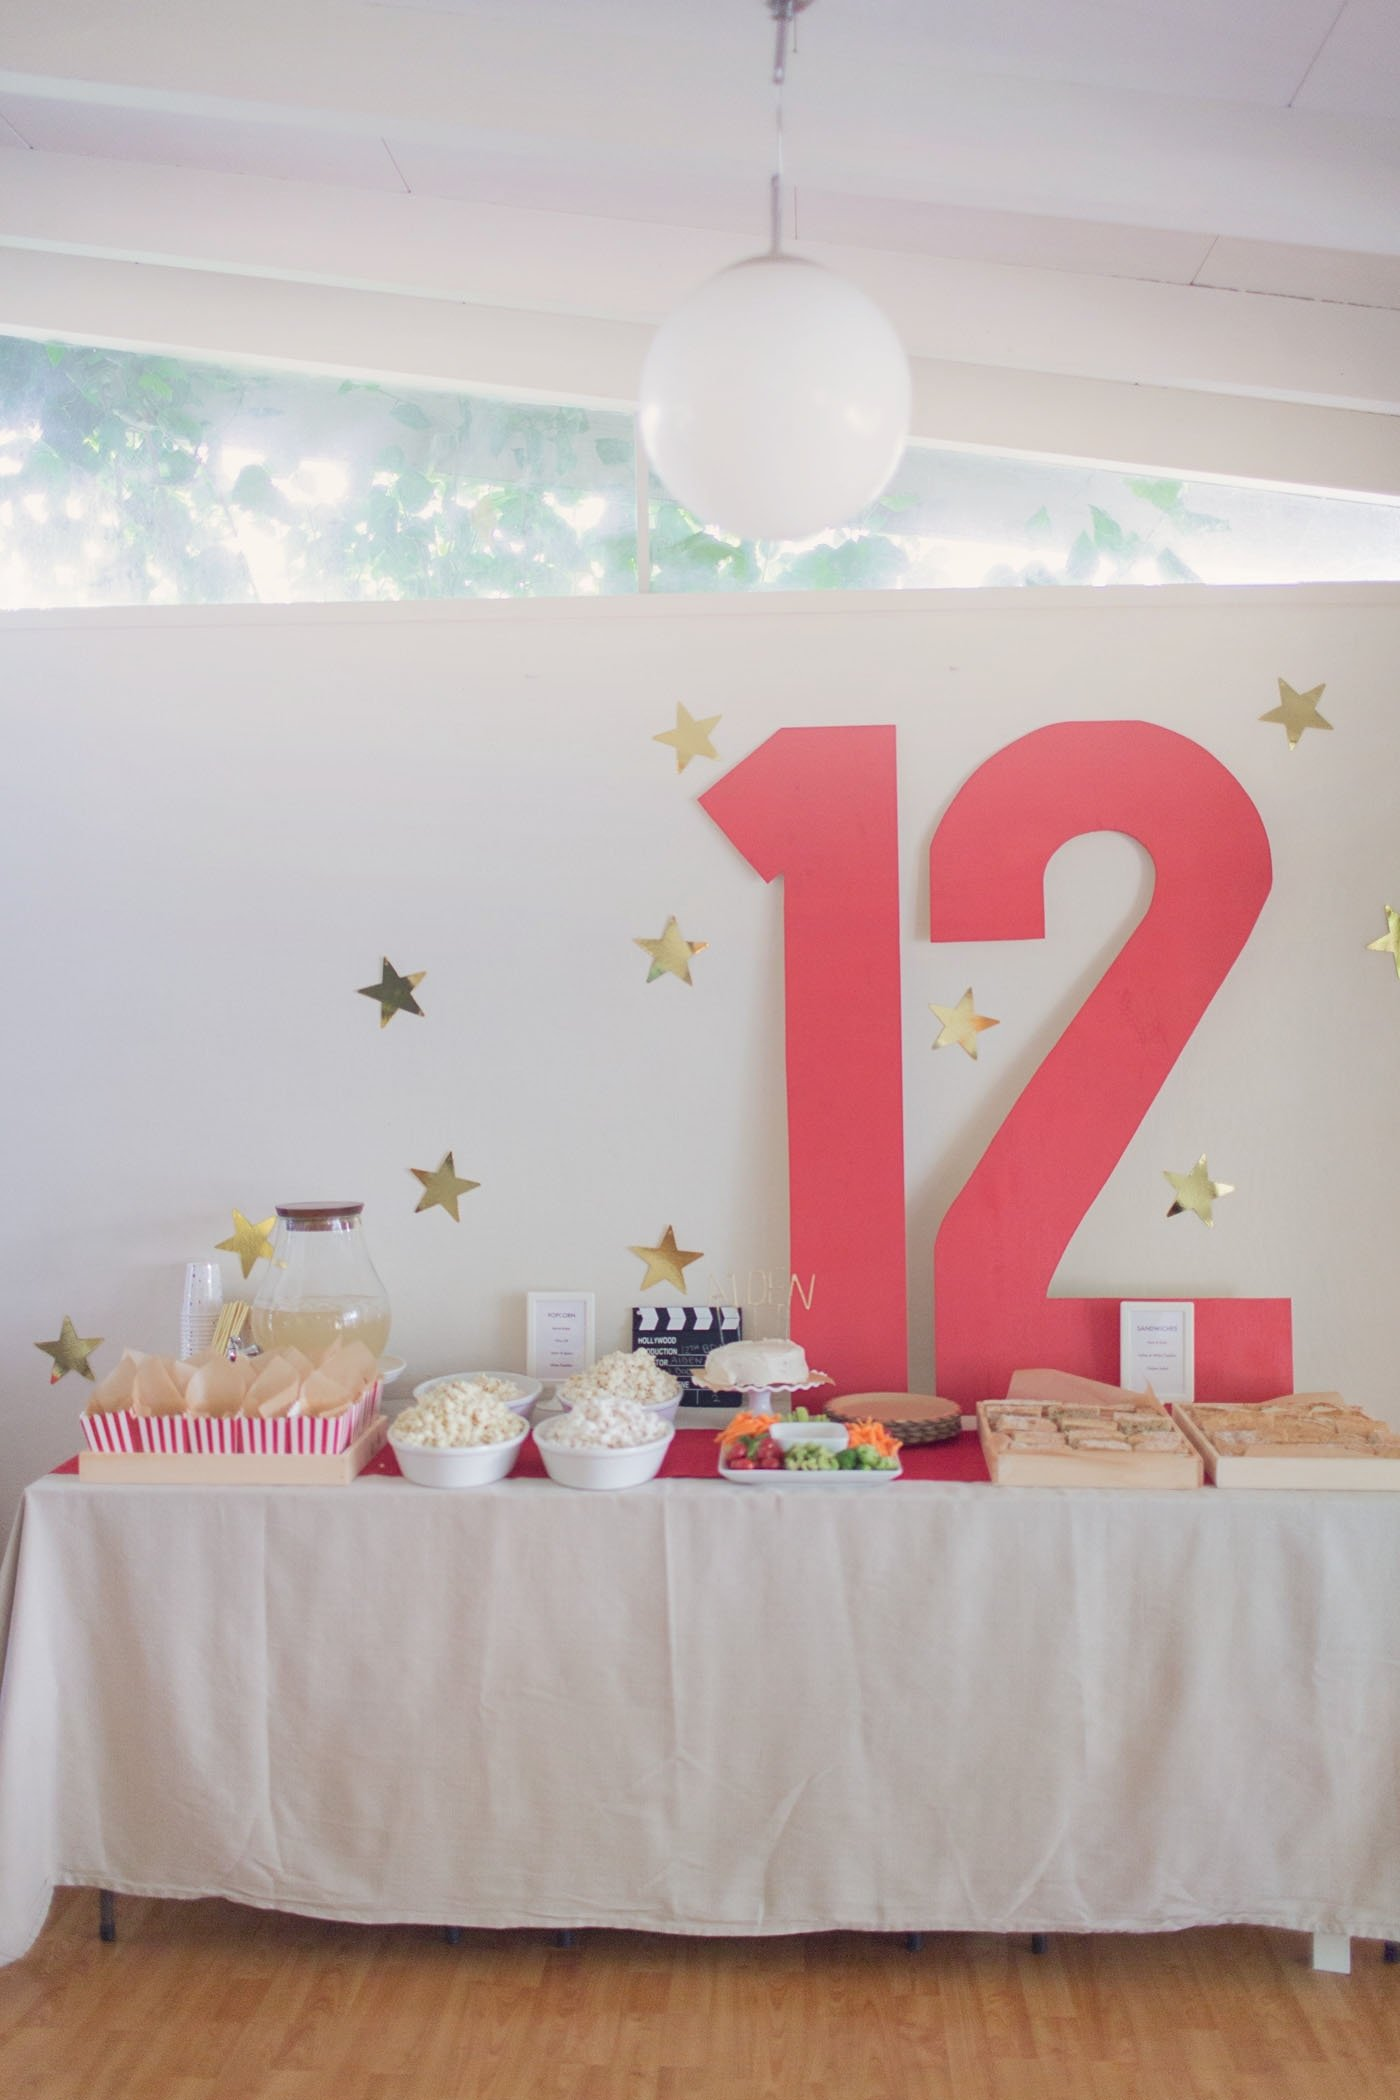 10 Most Recommended Teenage Girl Birthday Party Ideas a movie inspired pre teen birthday party life party pinterest 1 2020